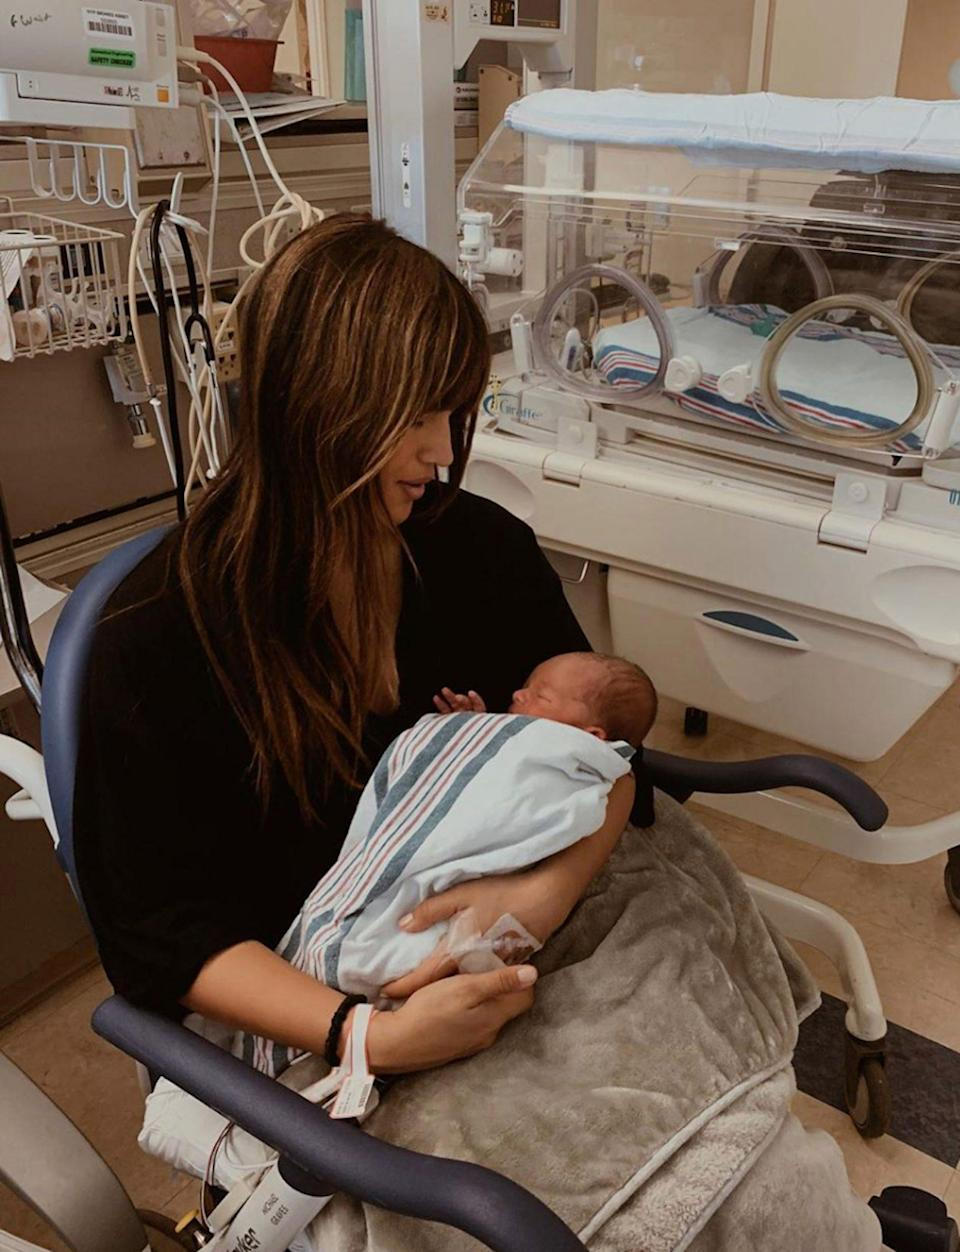 """<p>The model's pregnancy was a """"breeze,"""" she writes. But postpartum was an entirely different experience. Barnes explains that giving birth to her son Jones Robert Cooper, whom she shares with husband Matt Cooper, in January 2020, was """"traumatic.""""</p> <p>""""Even with a natural birth with no tools, Jones suffered a subgaleal hematoma, multiple brain hemorrhages, and jaundice,"""" Barnes writes in <em>Life After Birth</em>. """"I suffered third-degree tearing, quite a bit of time in a wheelchair and what is expected to be a two month recovery. Then add the emotional rollercoaster on top.""""</p> <p>""""Postpartum has been a mix of the happiest moments of my life, as well as some of the lowest,"""" writes Barnes, who worried she couldn't balance going back to work and being a mom. </p> <p>She's thankful to her husband, friends, family and the """"mom club"""" that showed her support.</p> <p>Barnes concludes, """"Sending love and light to all the new mommas out there, we got this.""""</p>"""